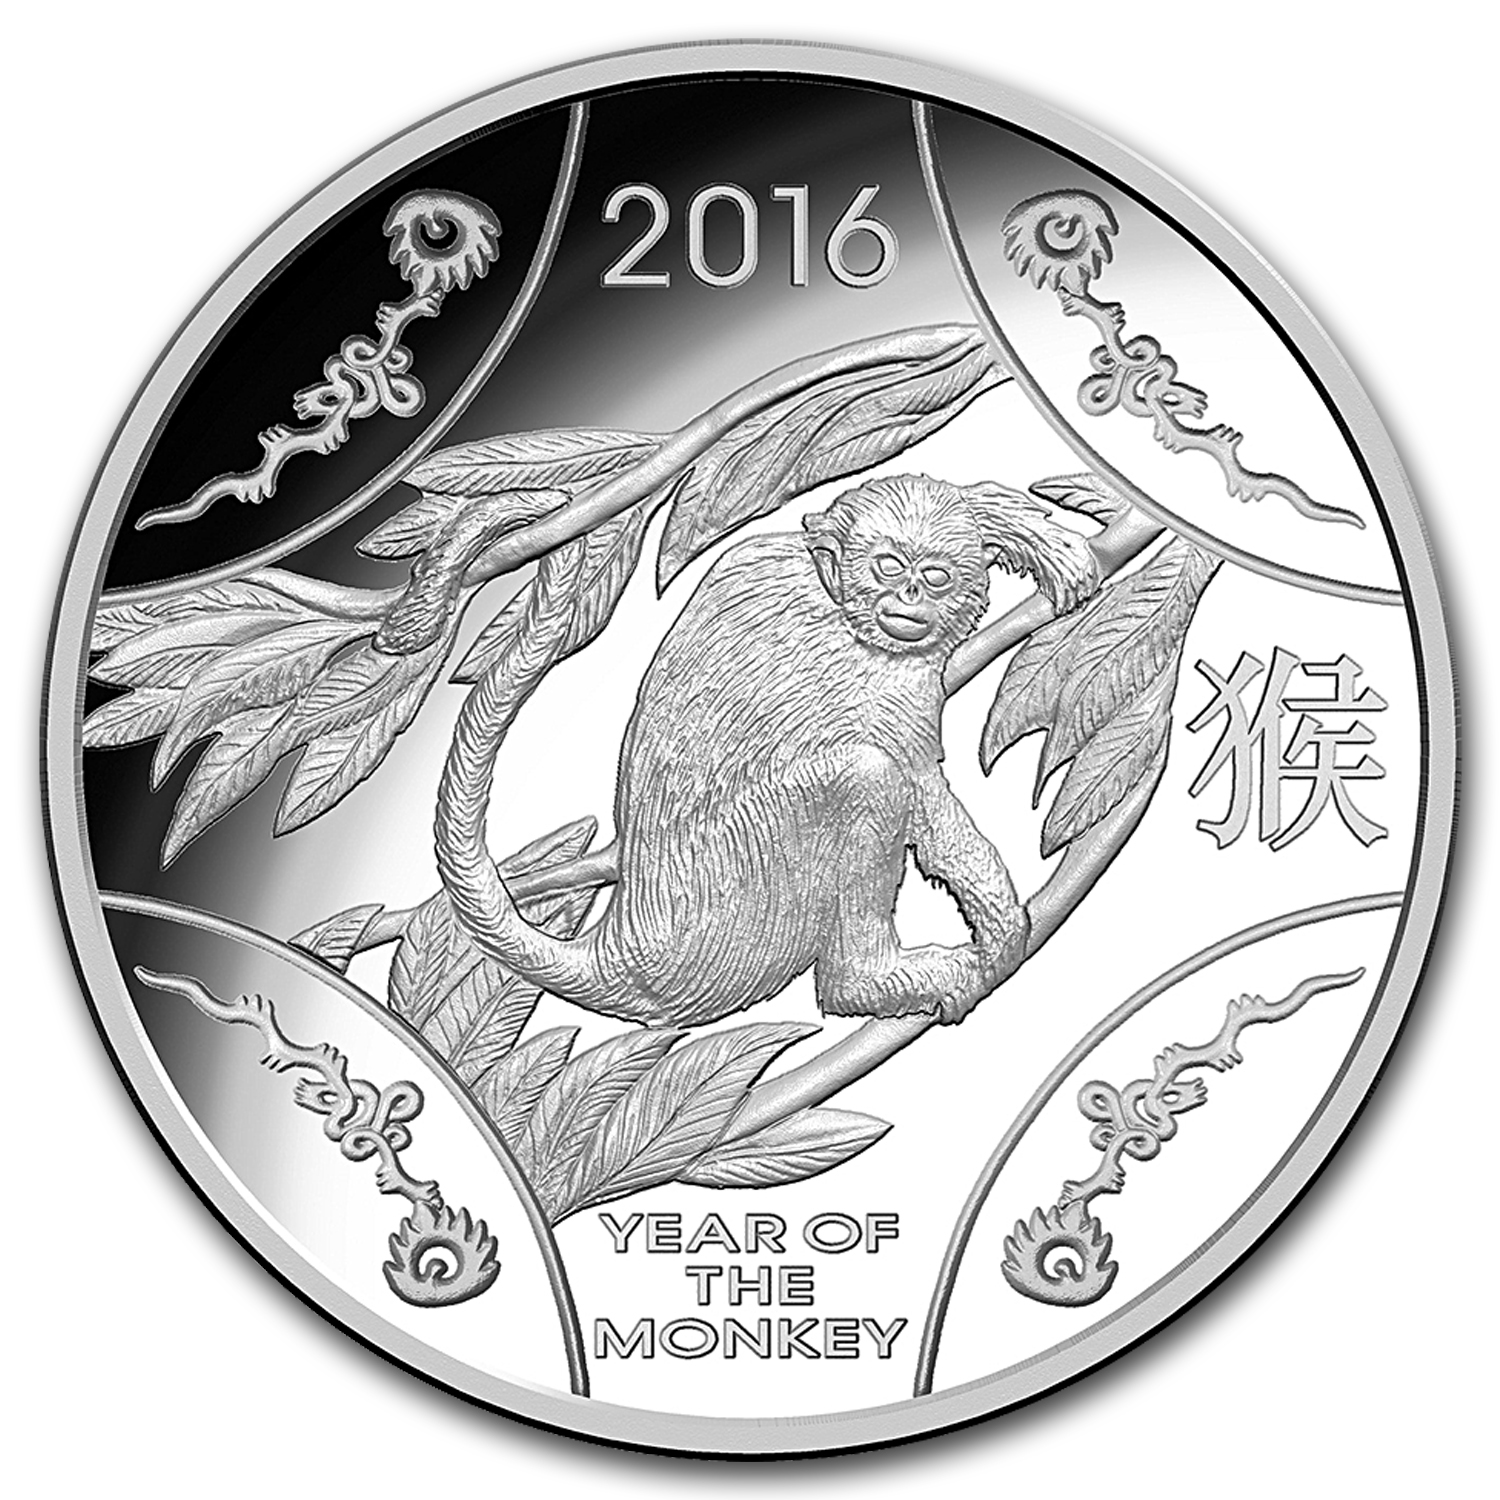 2016 Australia Silver Year of the Monkey Proof